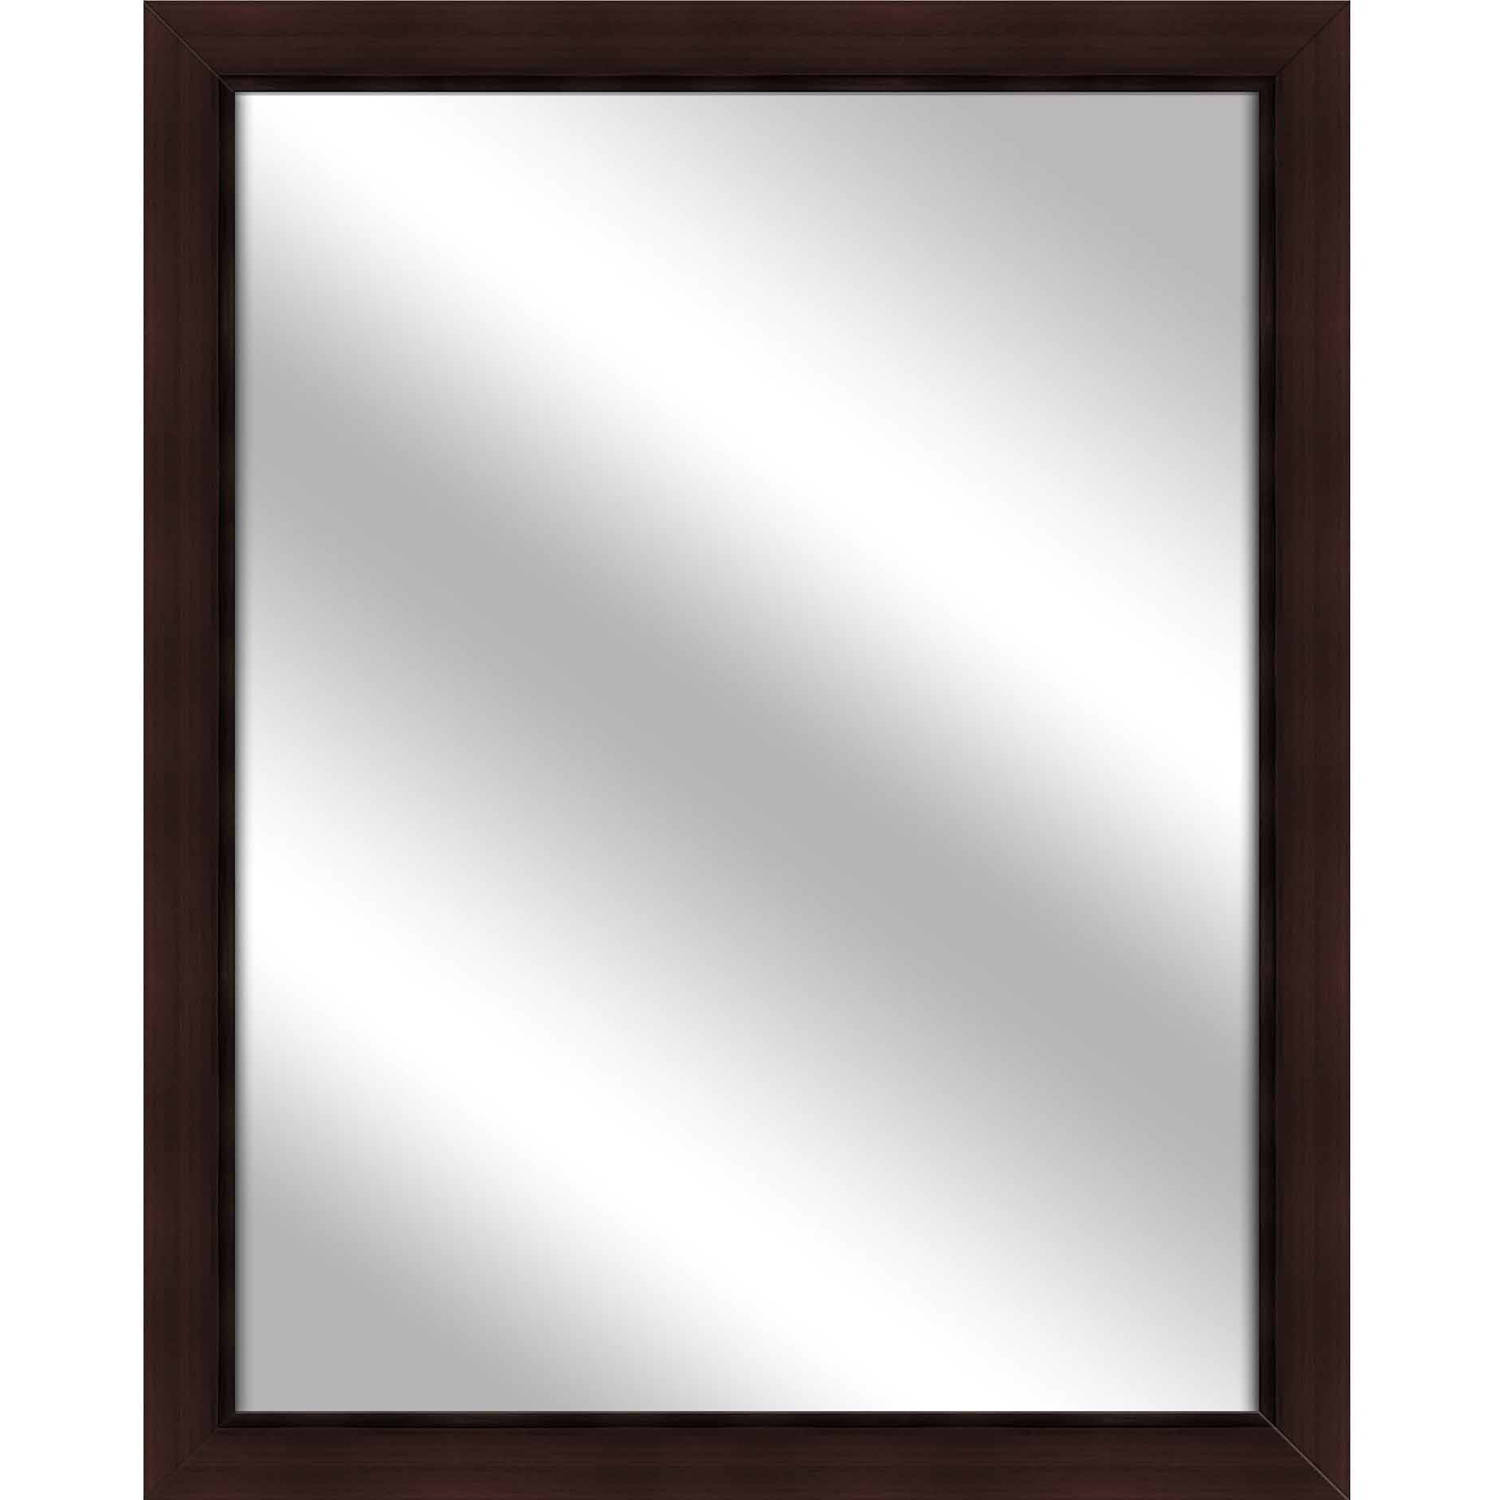 Vanity Mirror, Brown, 24.75x30.75 by PTM Images